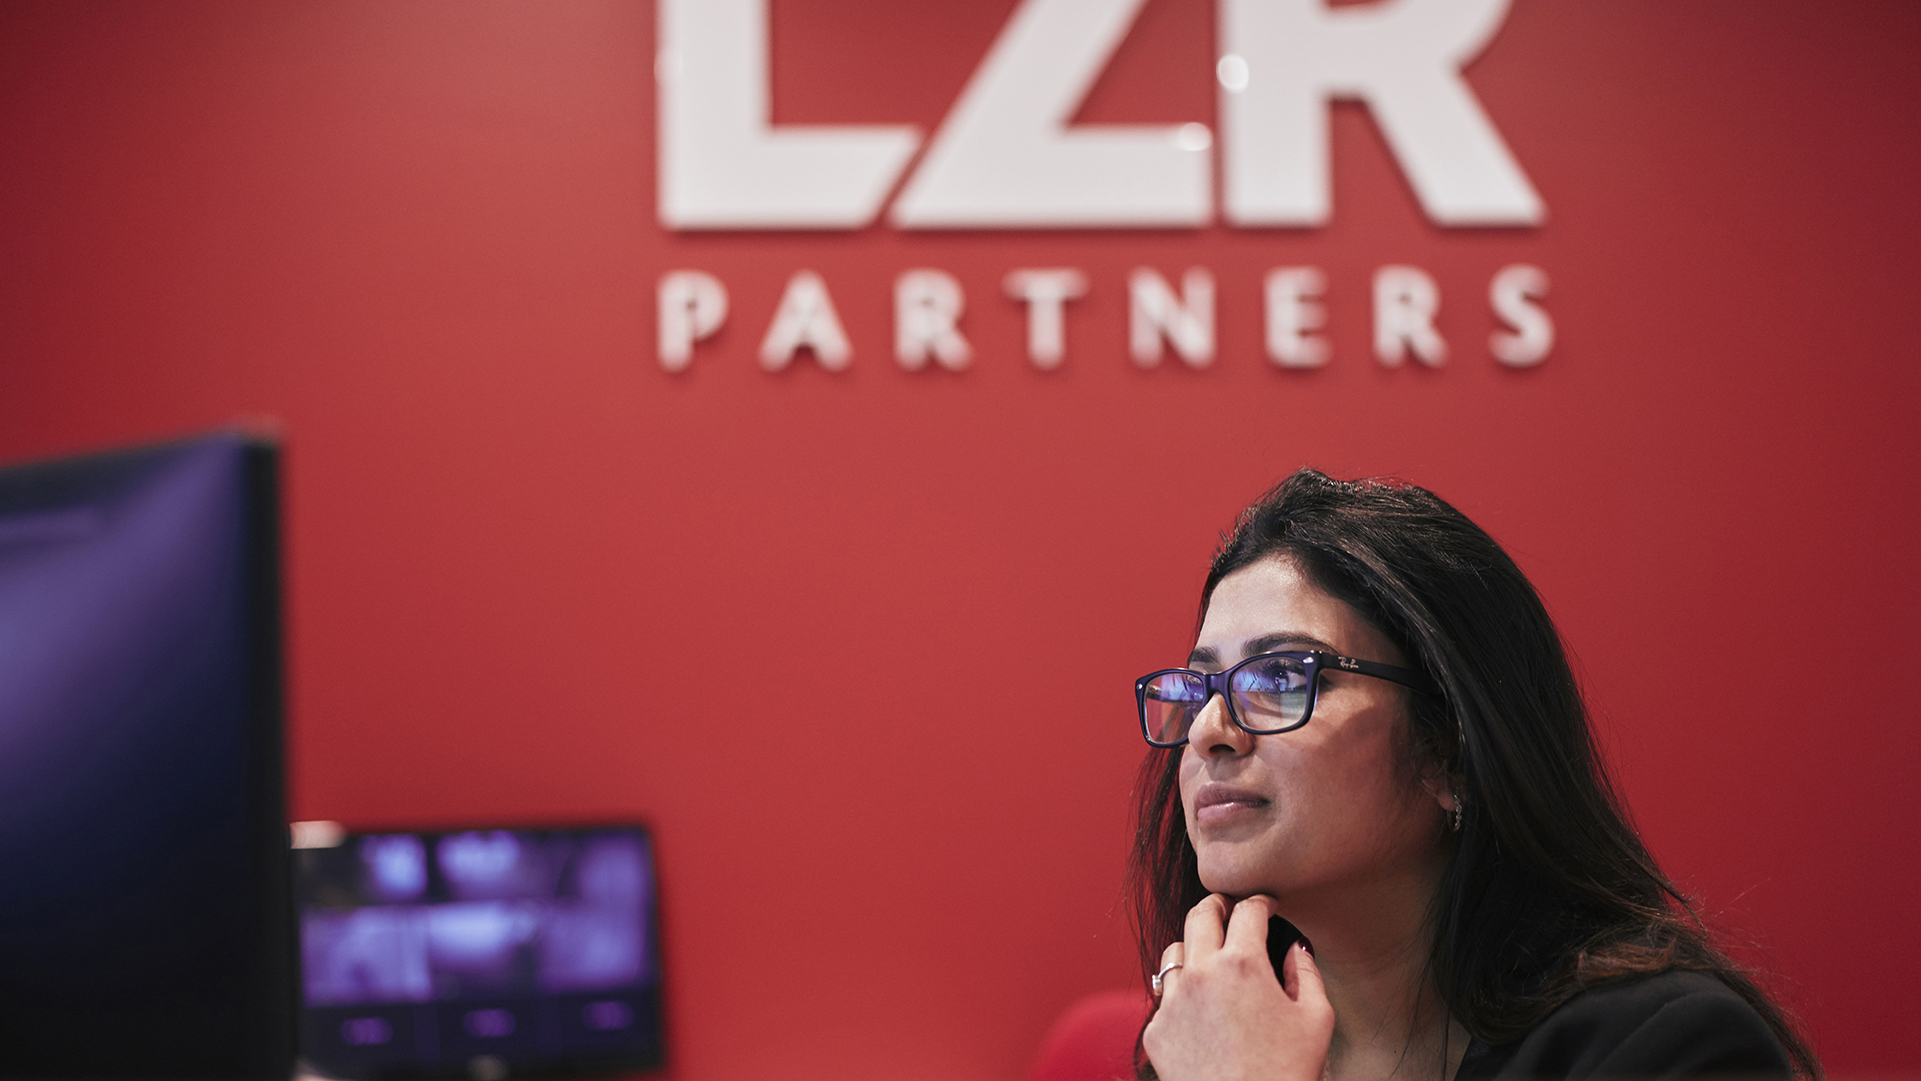 LZR Partners Accounting